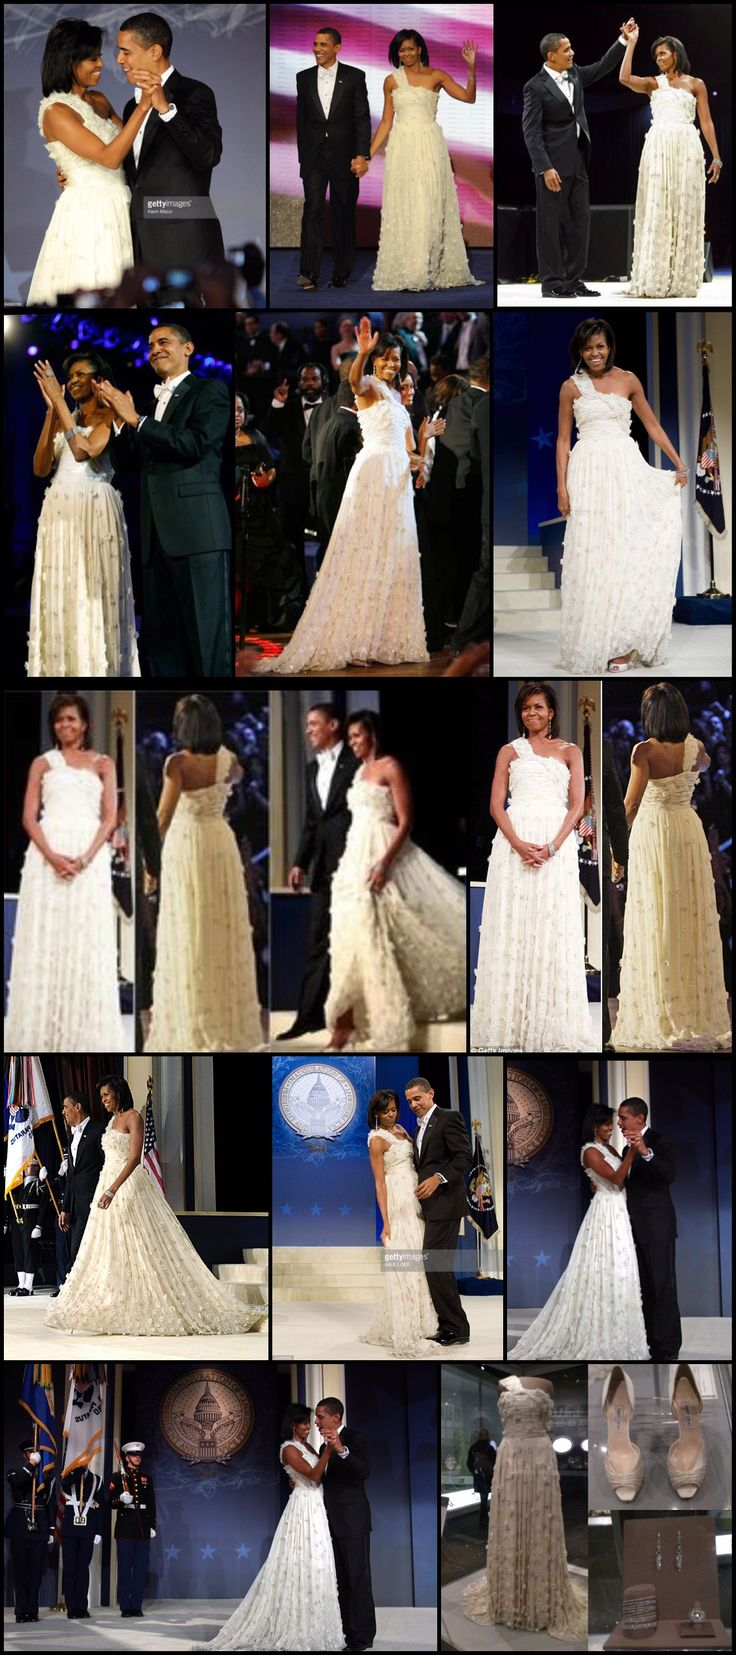 #1stDay #44th #President #POTUS Of The United States  Of America #CommanderInChief #BarackObama #FirstLady #FLOTUS Of The United States  Of America #MichelleObama #First #Inauguration #January2009 Michelle Obama's inaugural gown goes to #Smithsonian – #JasonWu Barack-Michelle-Obama #InauguralBall It was the dress heard 'round the fashion world – a white chiffon one-shoulder gown made by a little-known Chinese American fashion designer named Jason Wu.